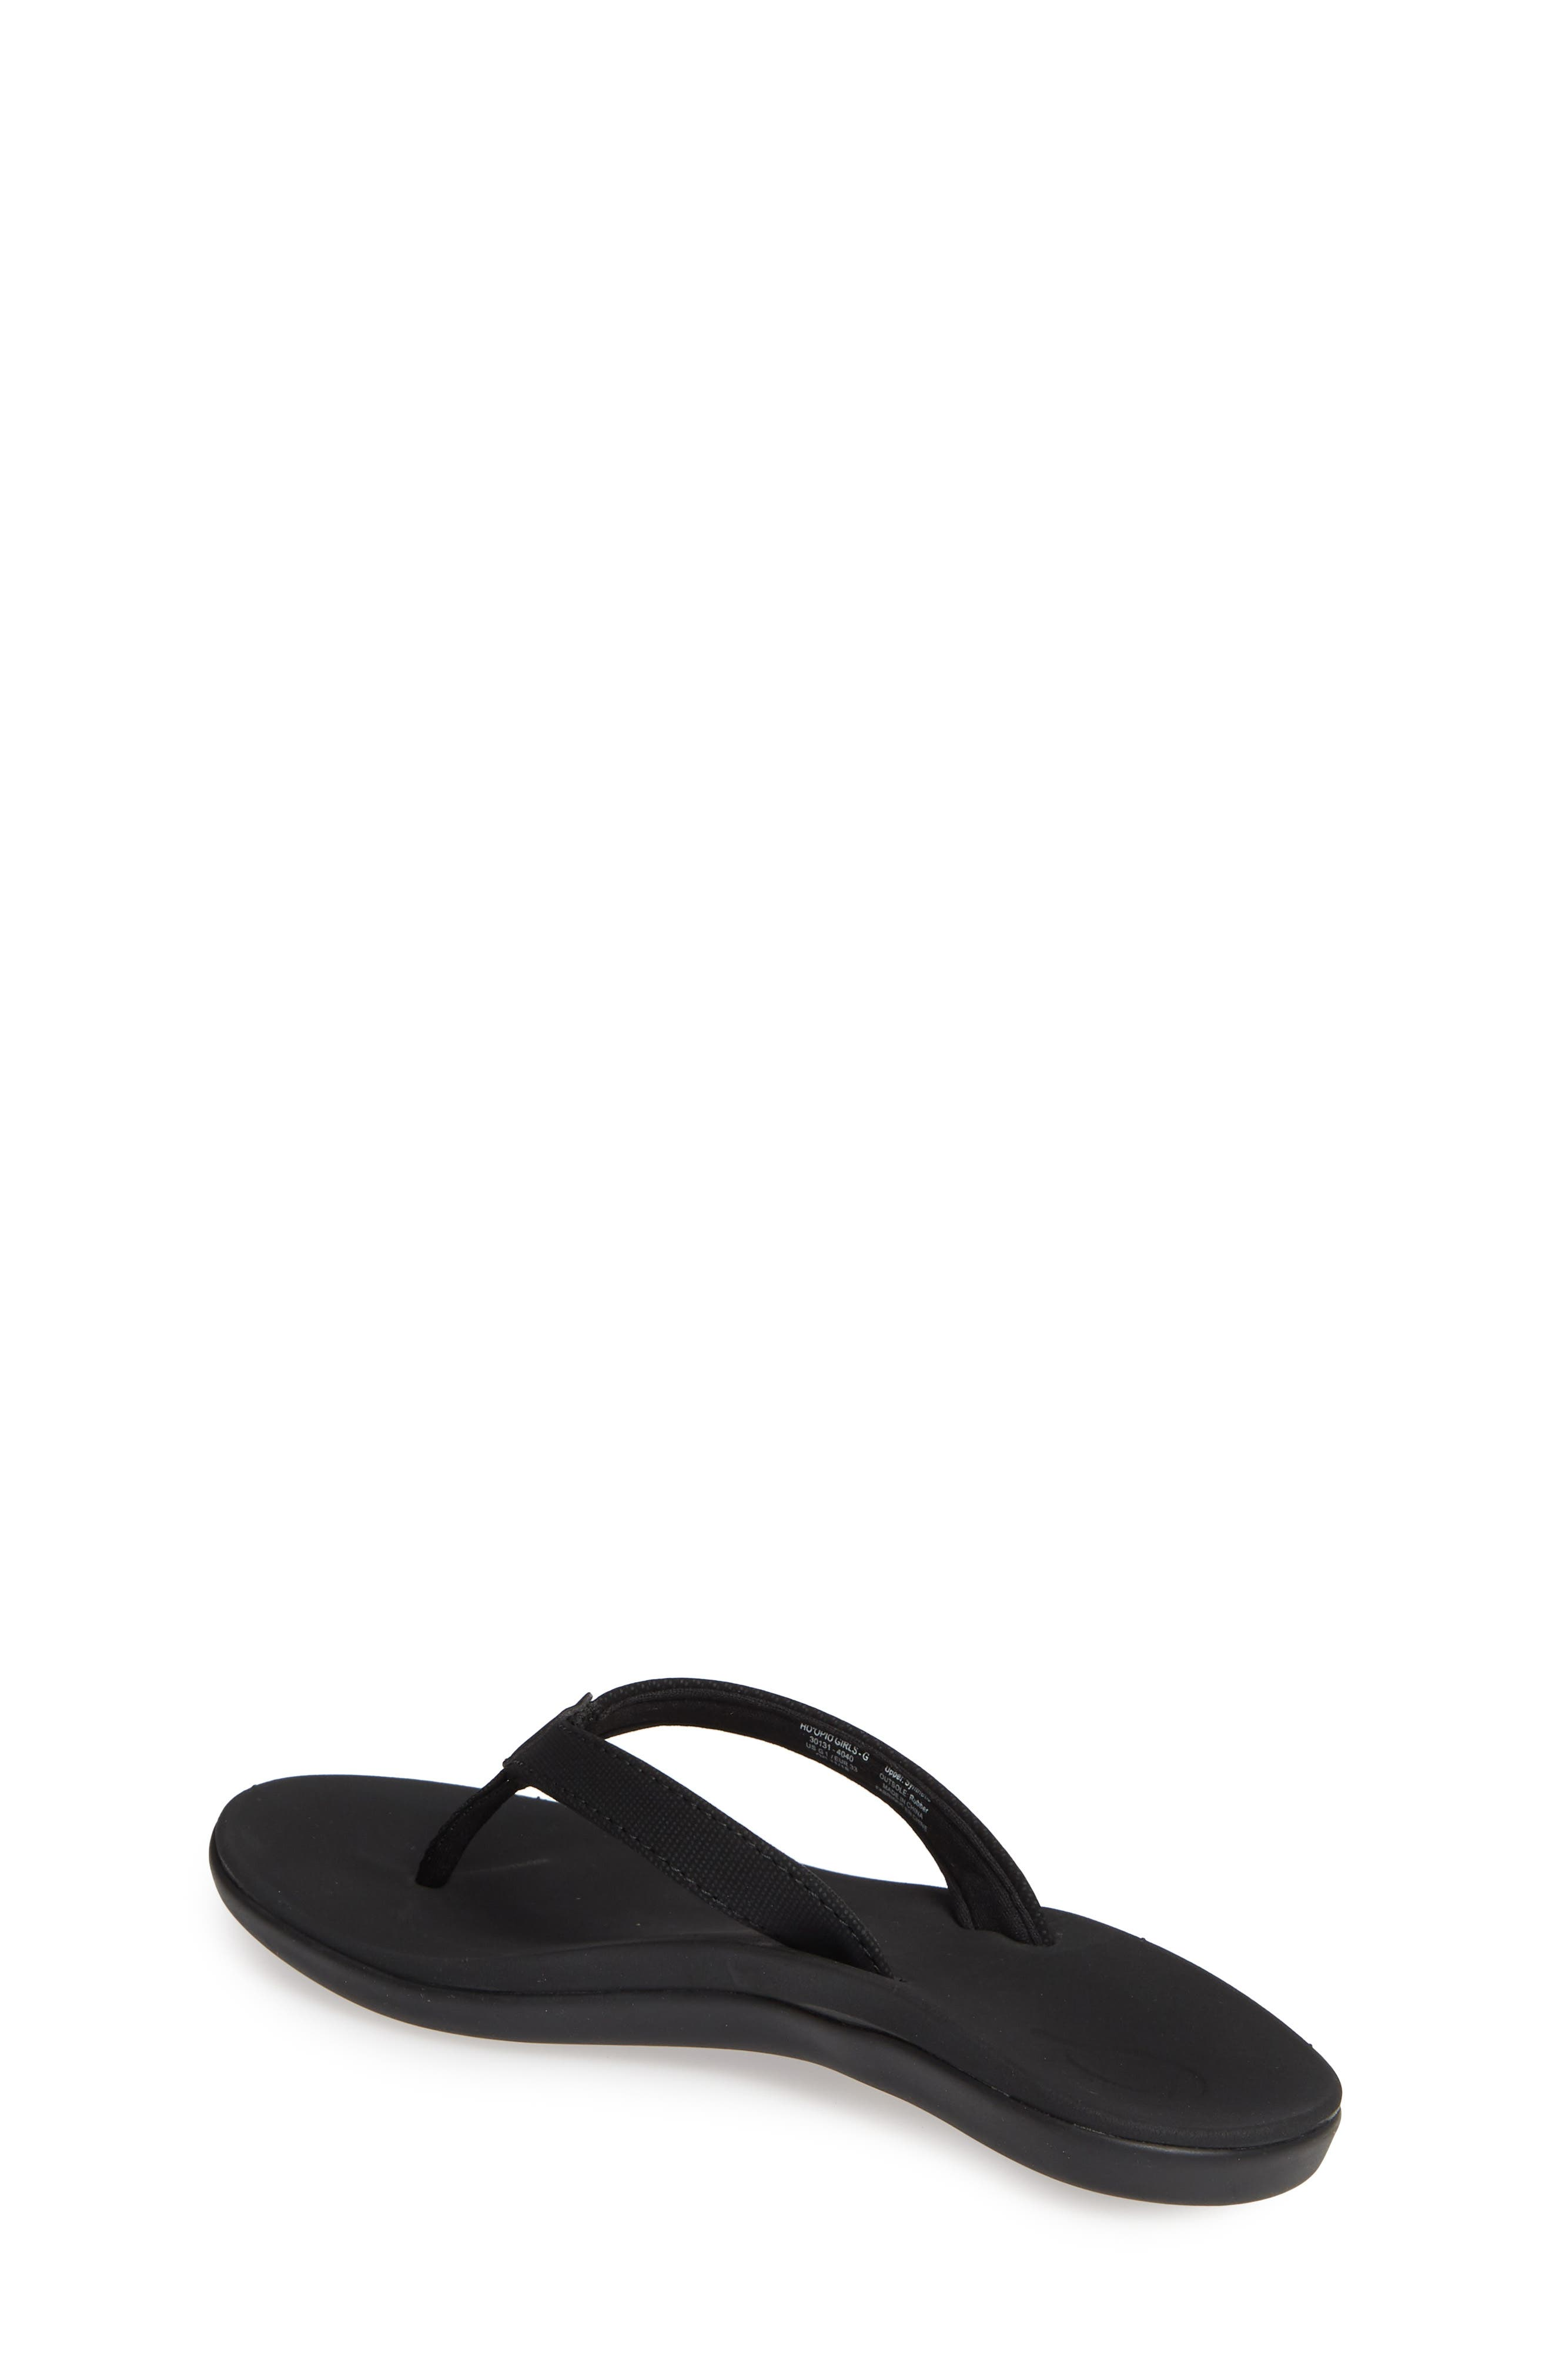 OLUKAI, Ho'opio Flip Flop, Alternate thumbnail 2, color, BLACK/ BLACK